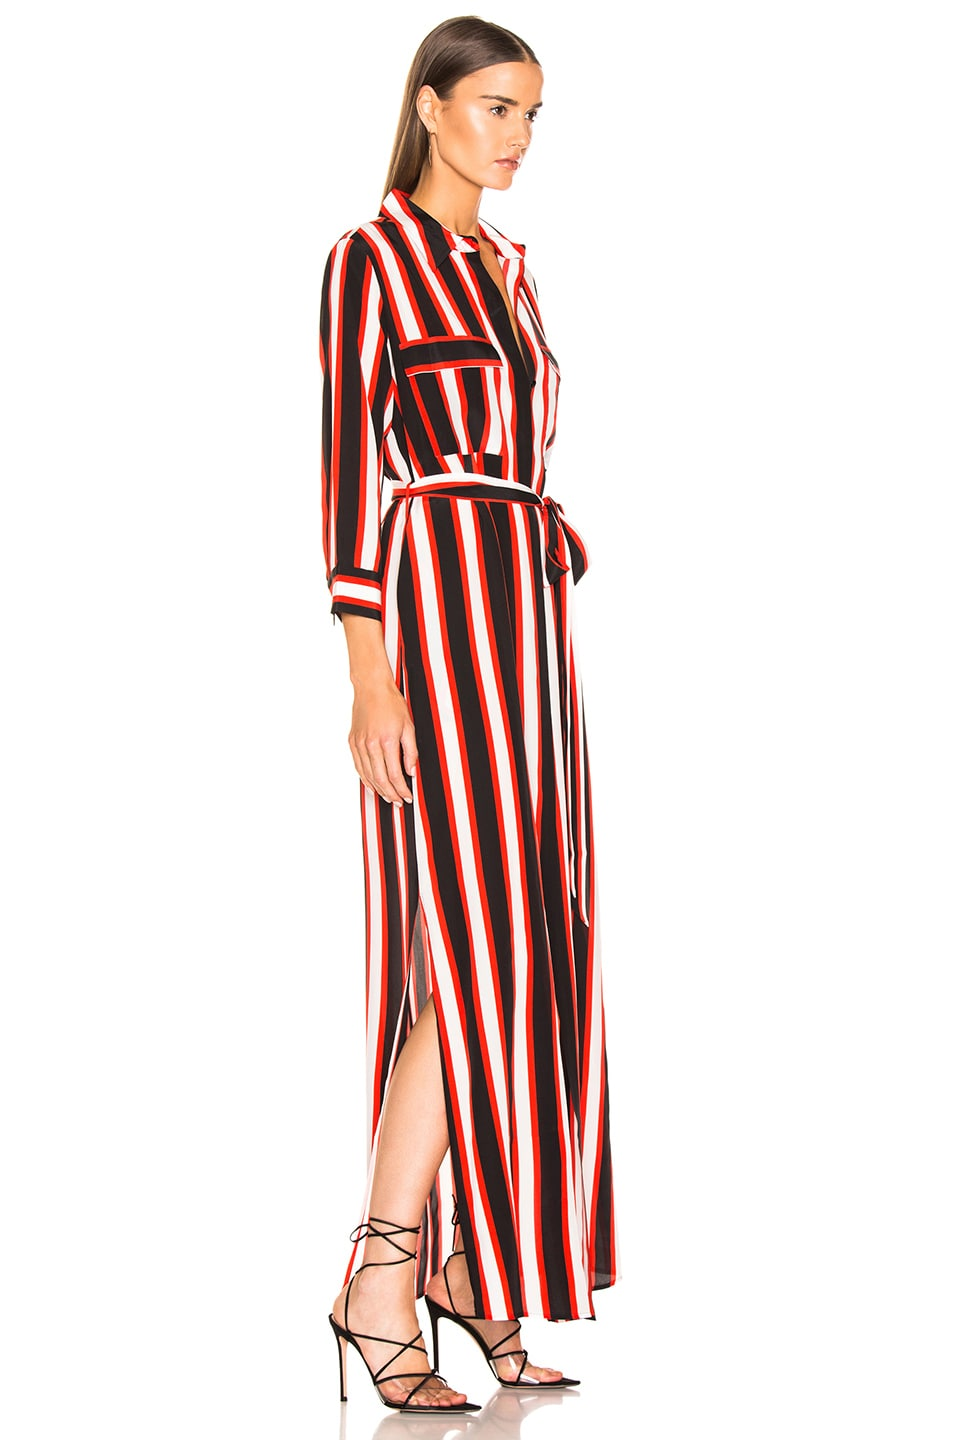 Image 2 of L'AGENCE Cameron Long Shirt Dress in Flame Red Multi